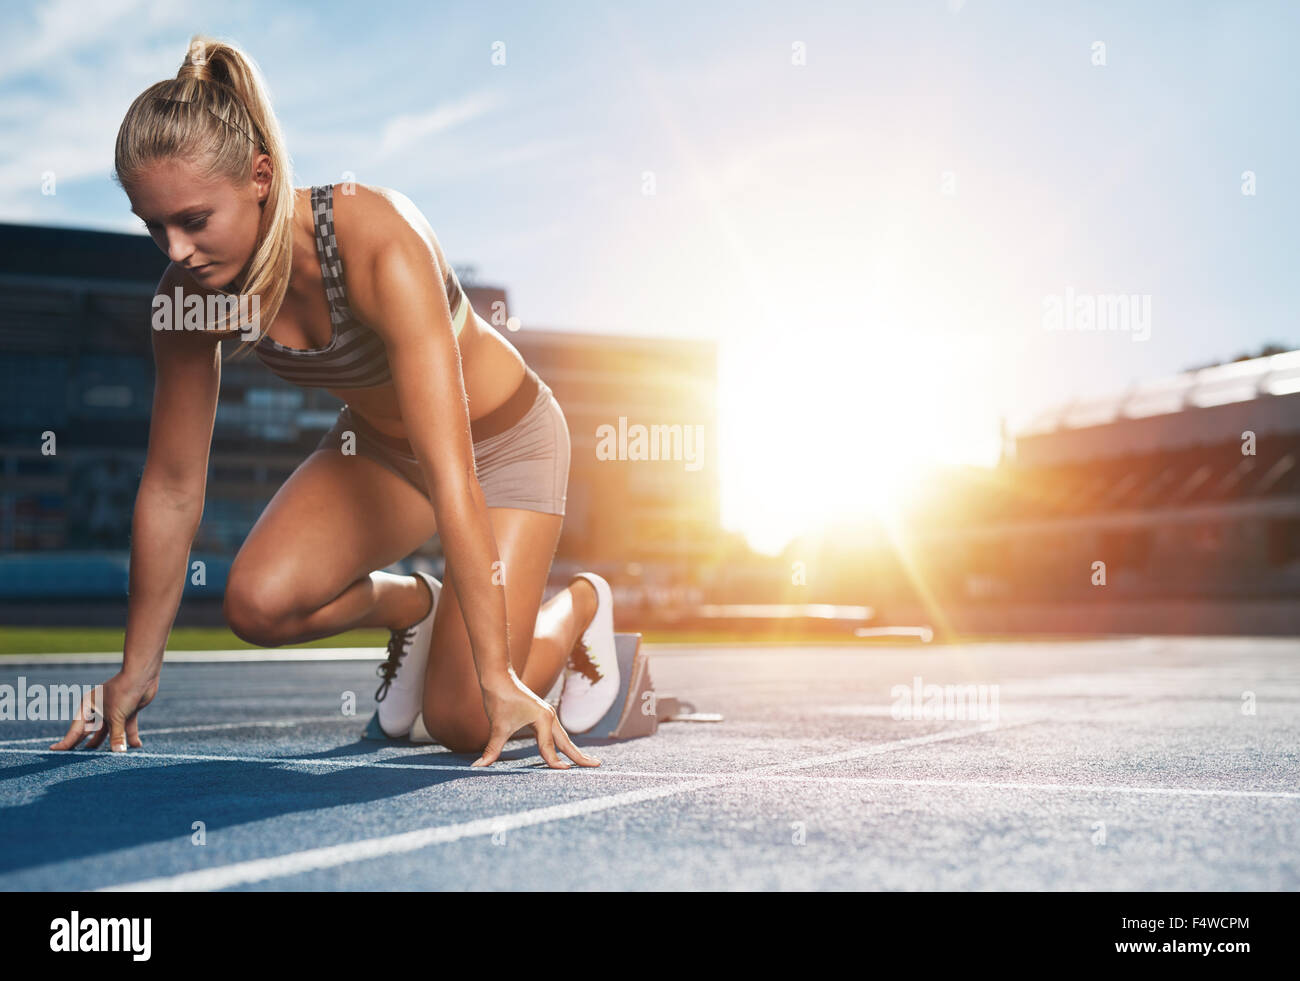 Young woman athlete at starting position ready to start a race. Female sprinter ready for sports exercise on racetrack - Stock Image